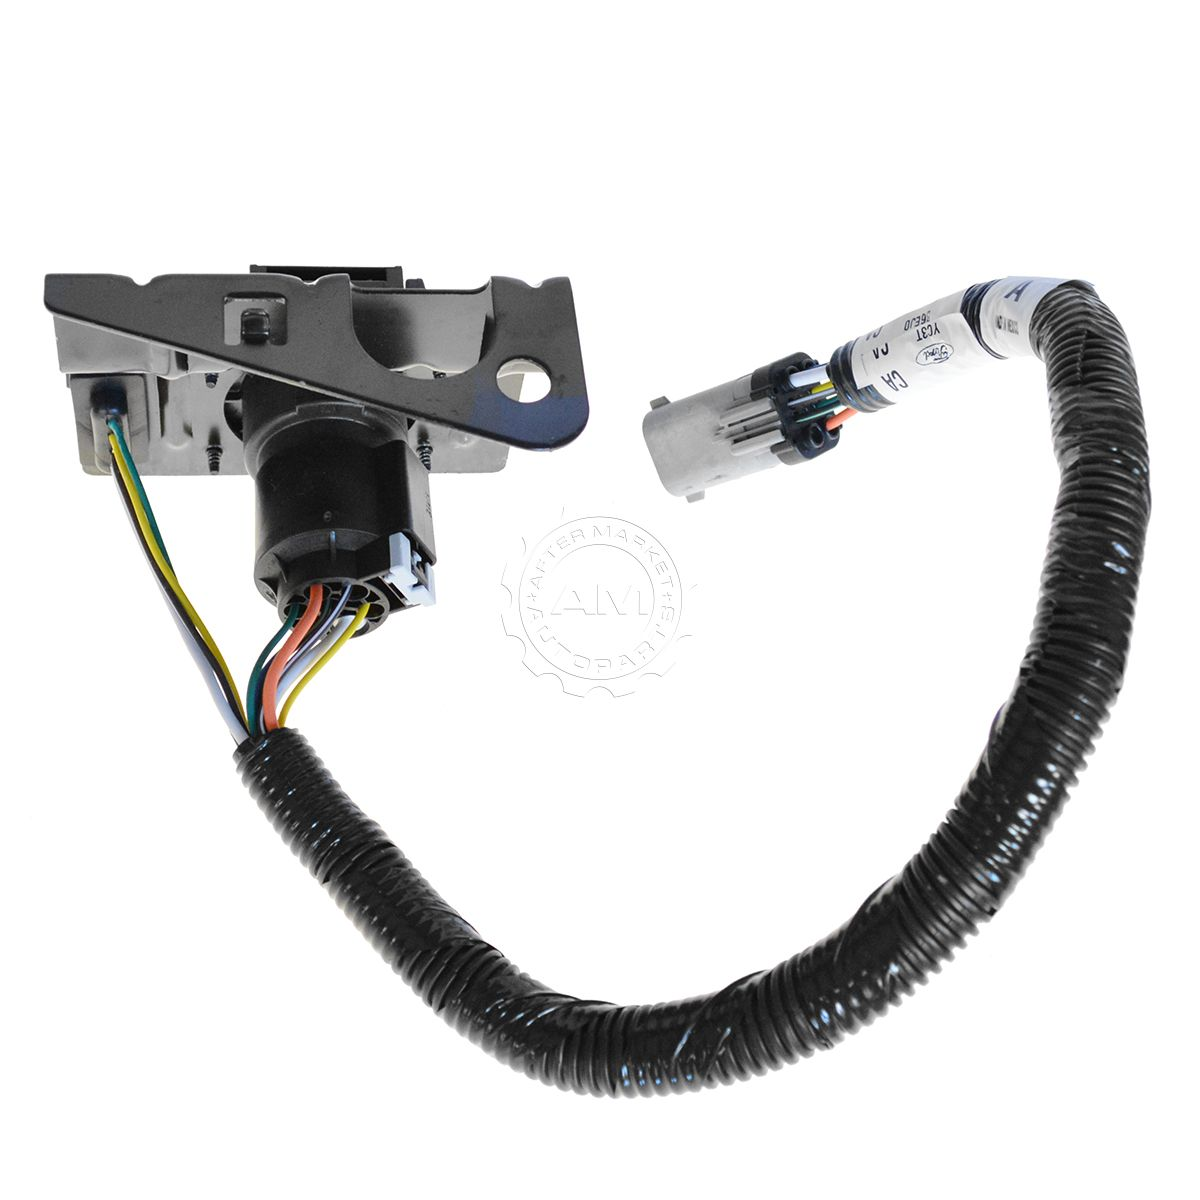 hight resolution of ford 4 7 pin trailer tow wiring harness w plug bracket for f250 tow bar wiring harness tow wiring harness